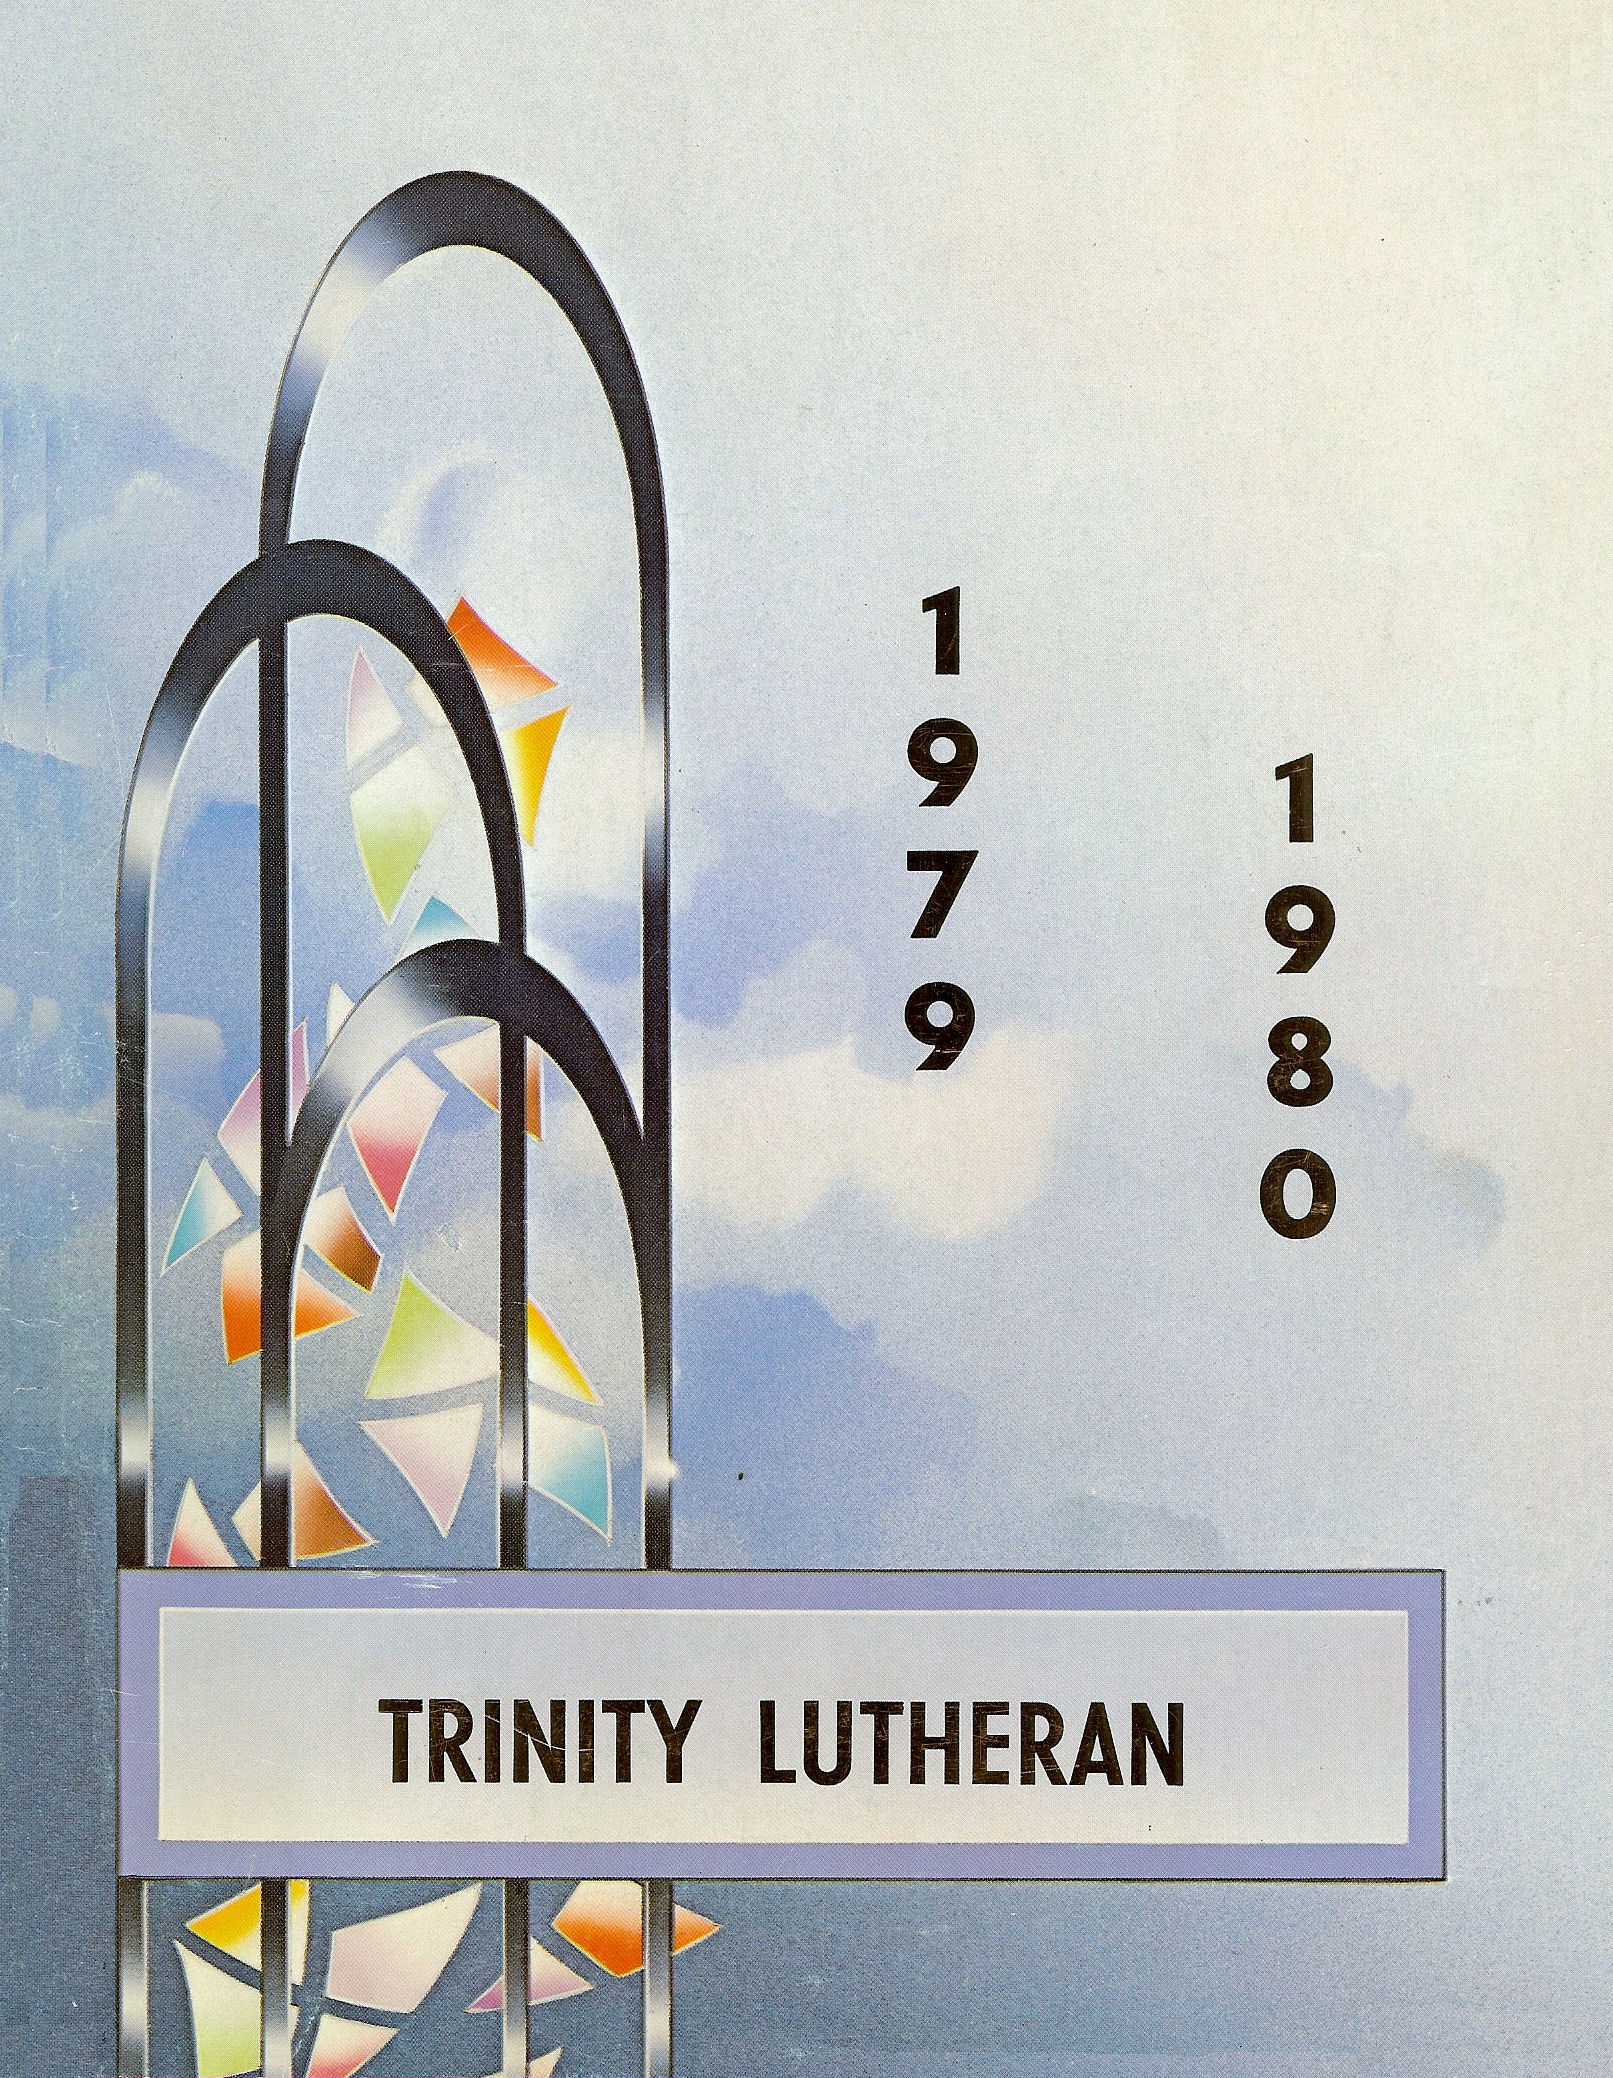 79 - 80 Yearbook Cover